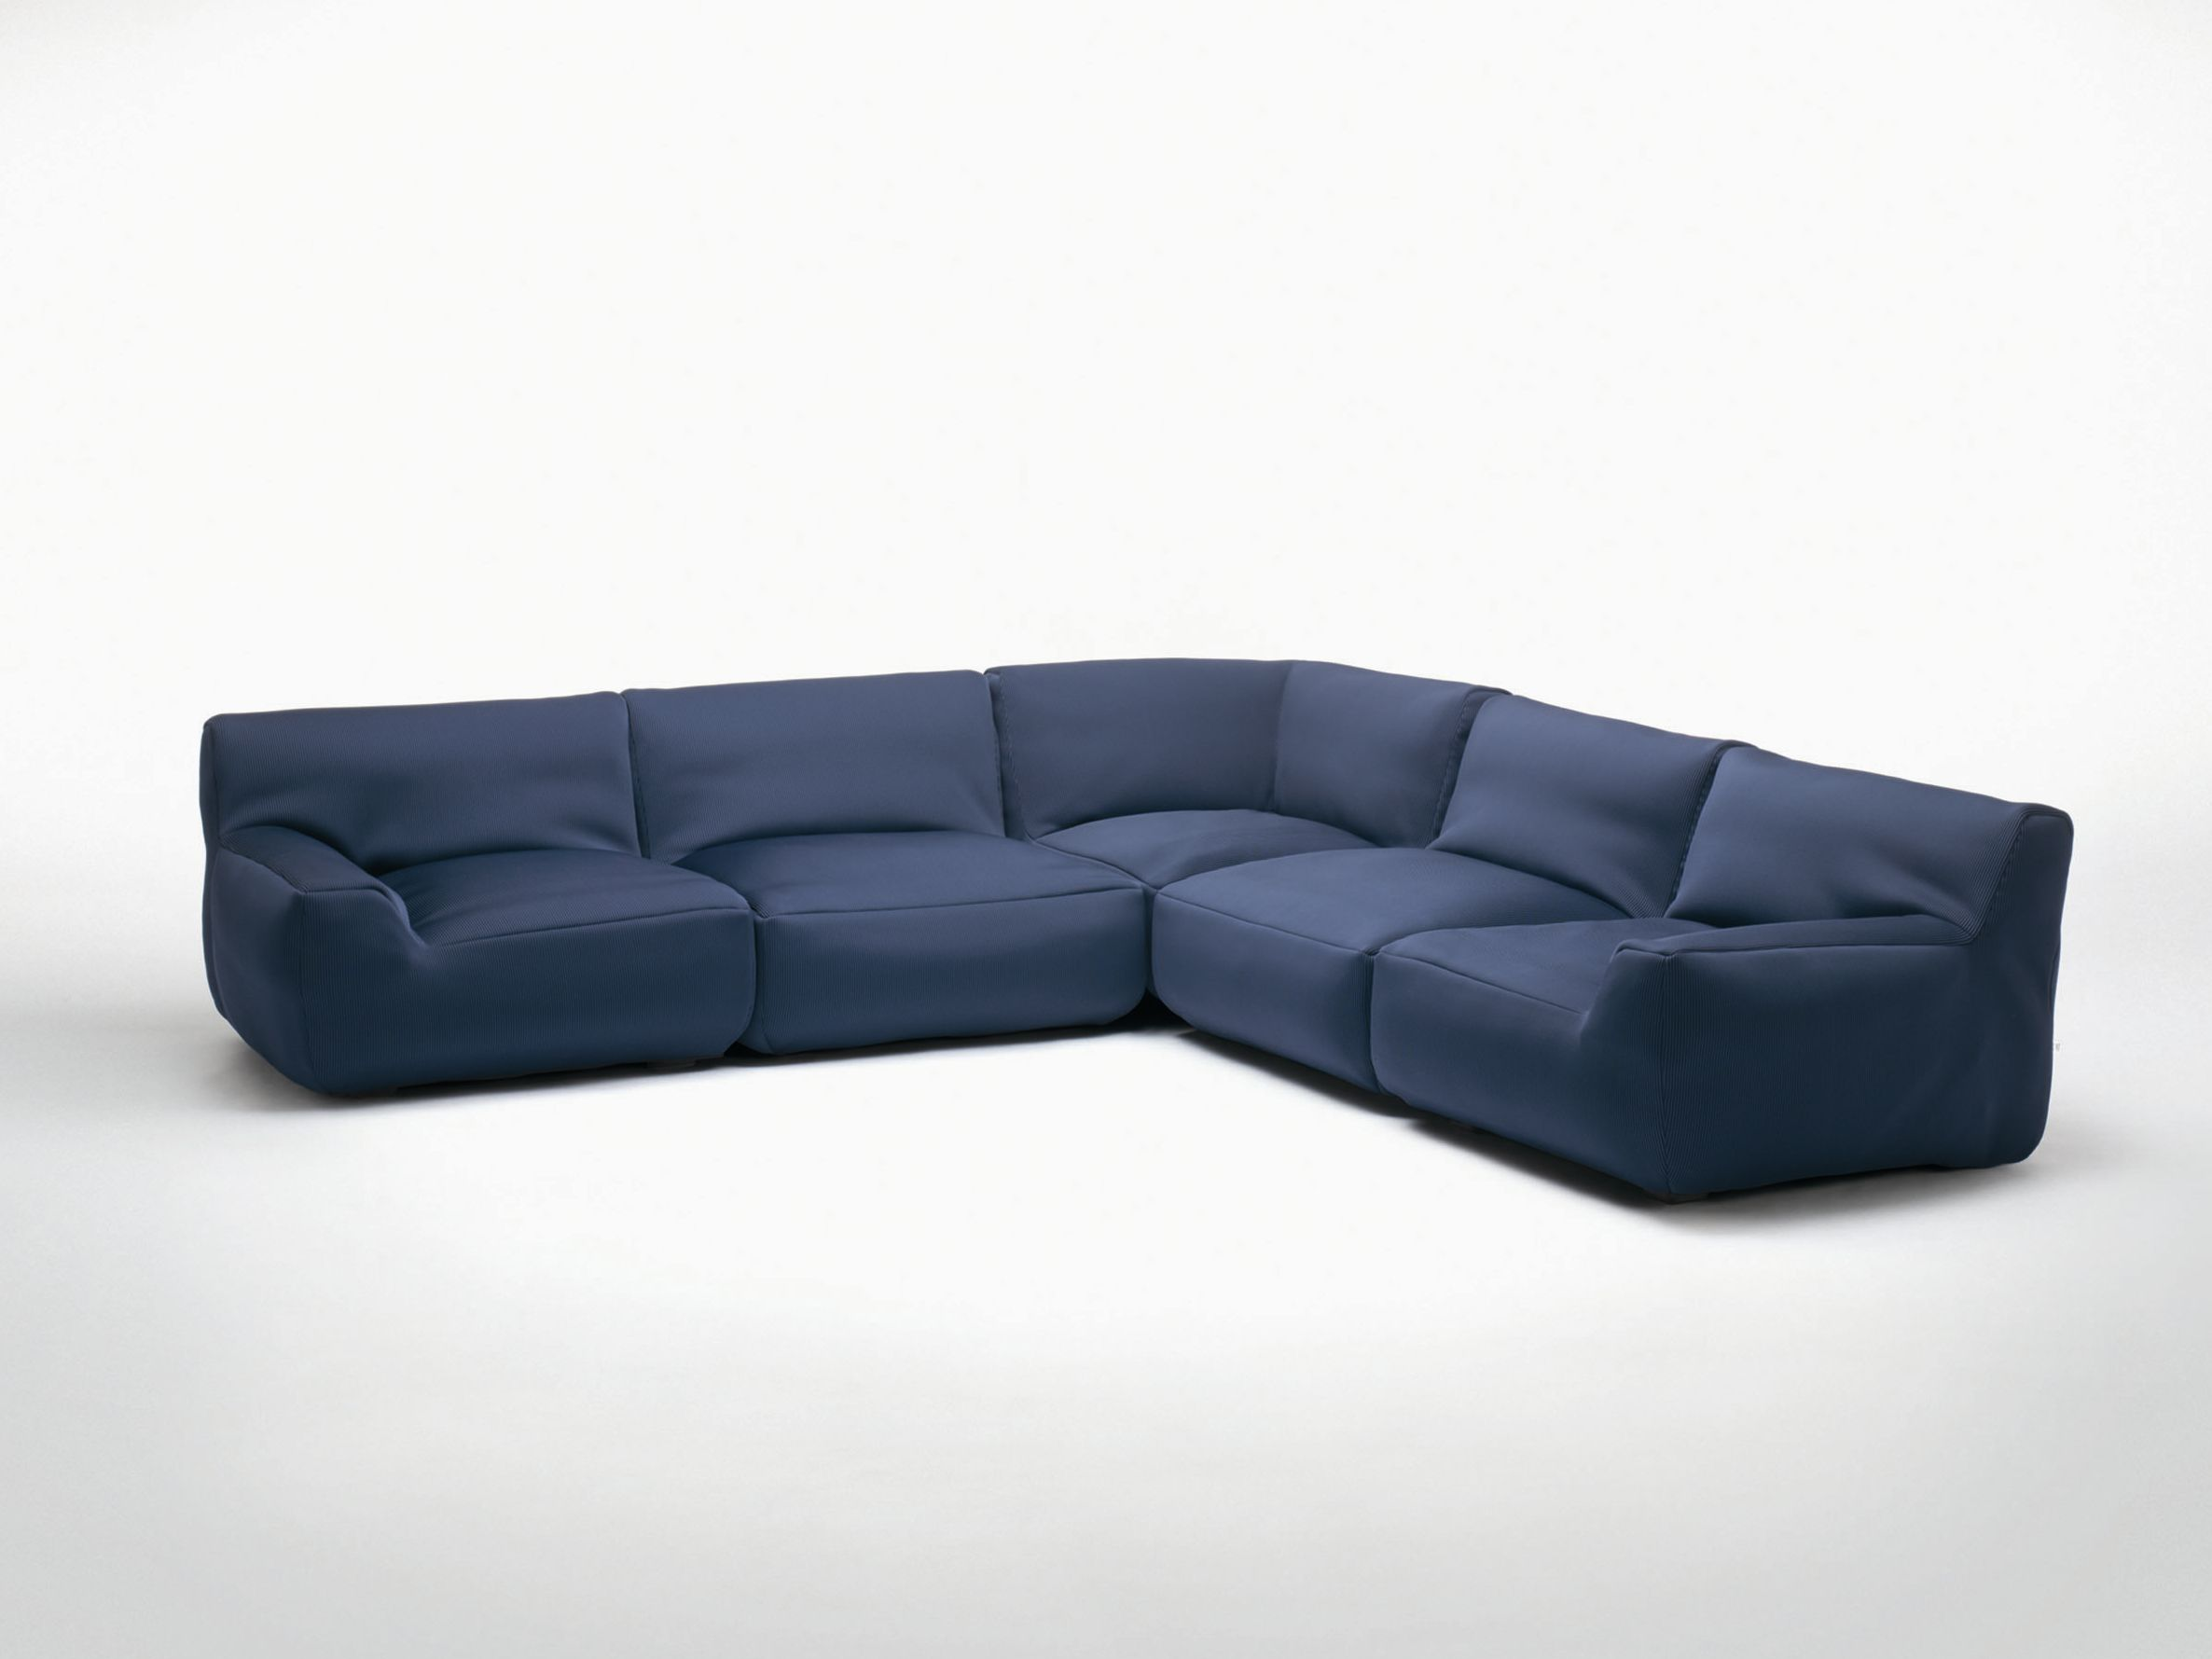 Sectional sofa with removable cover WEL E Corner sofa Aqua